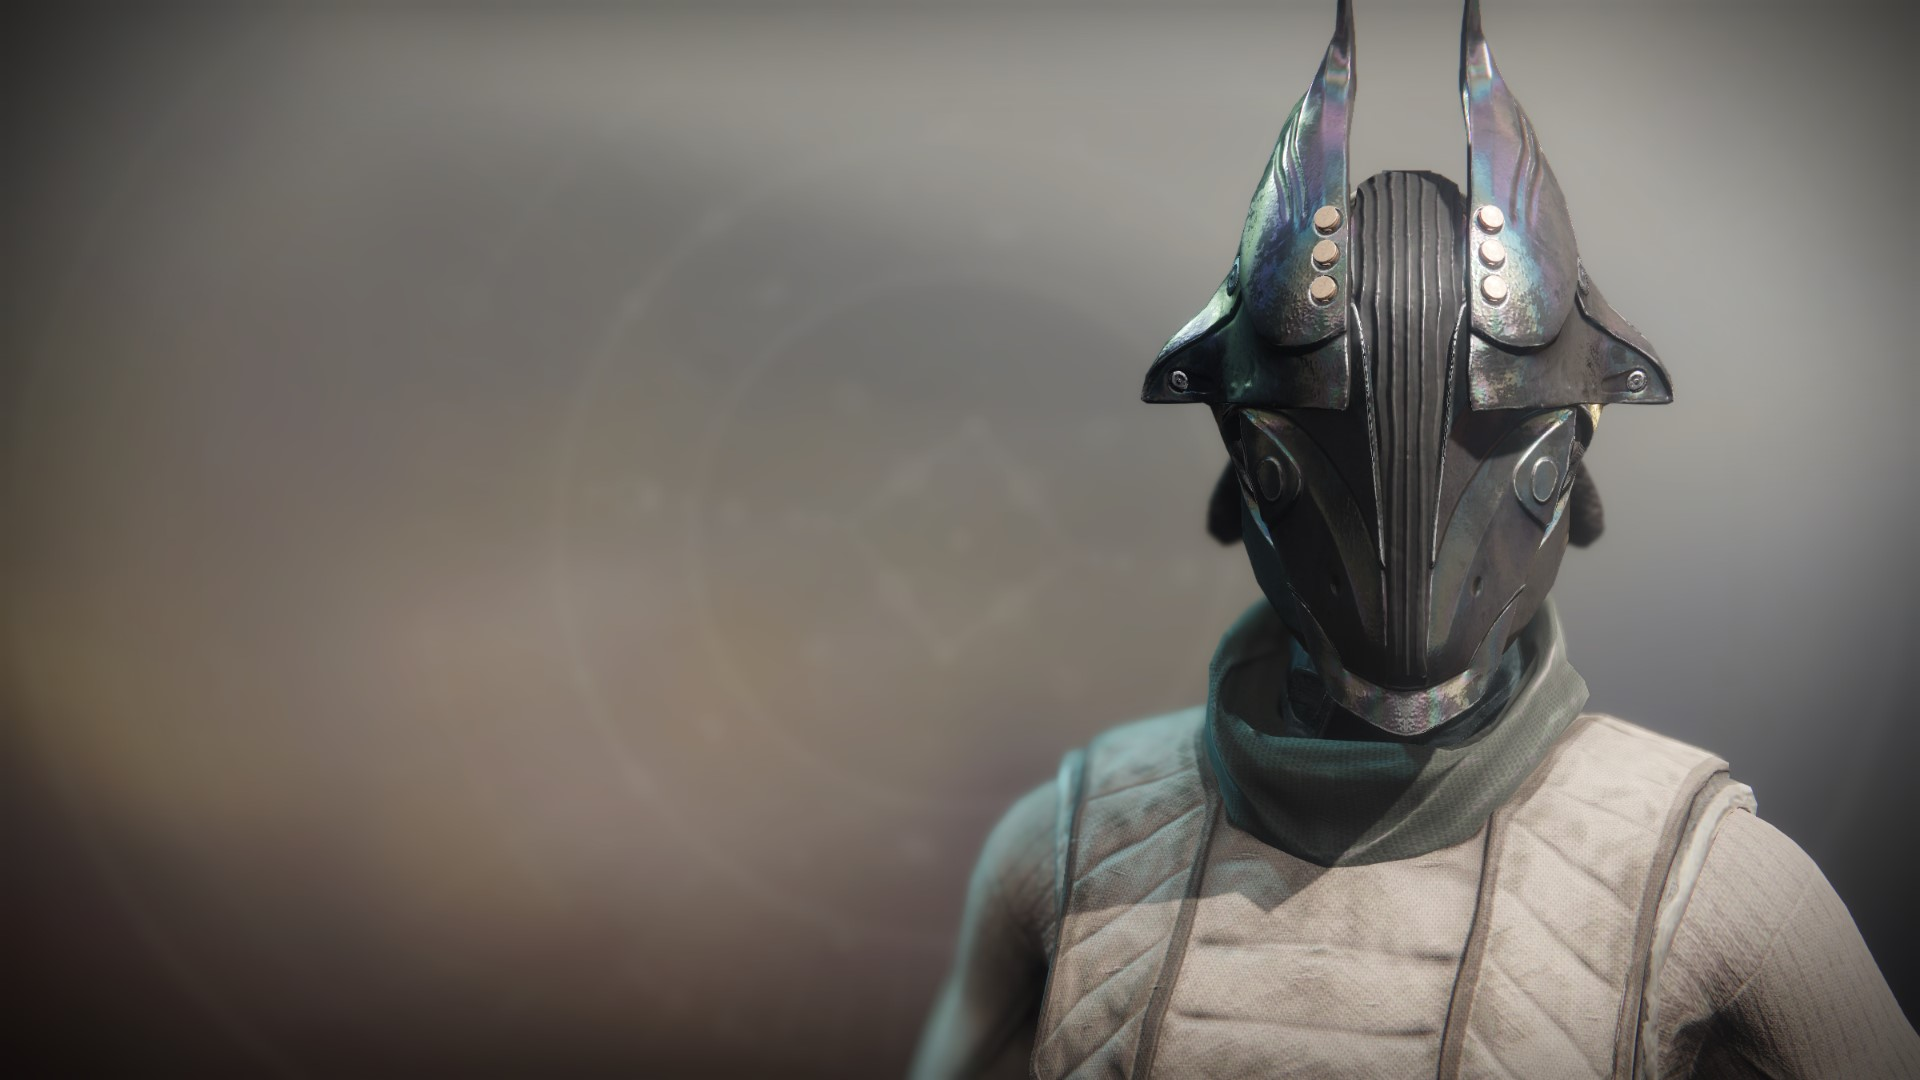 An in-game render of the Mask of Sekris.